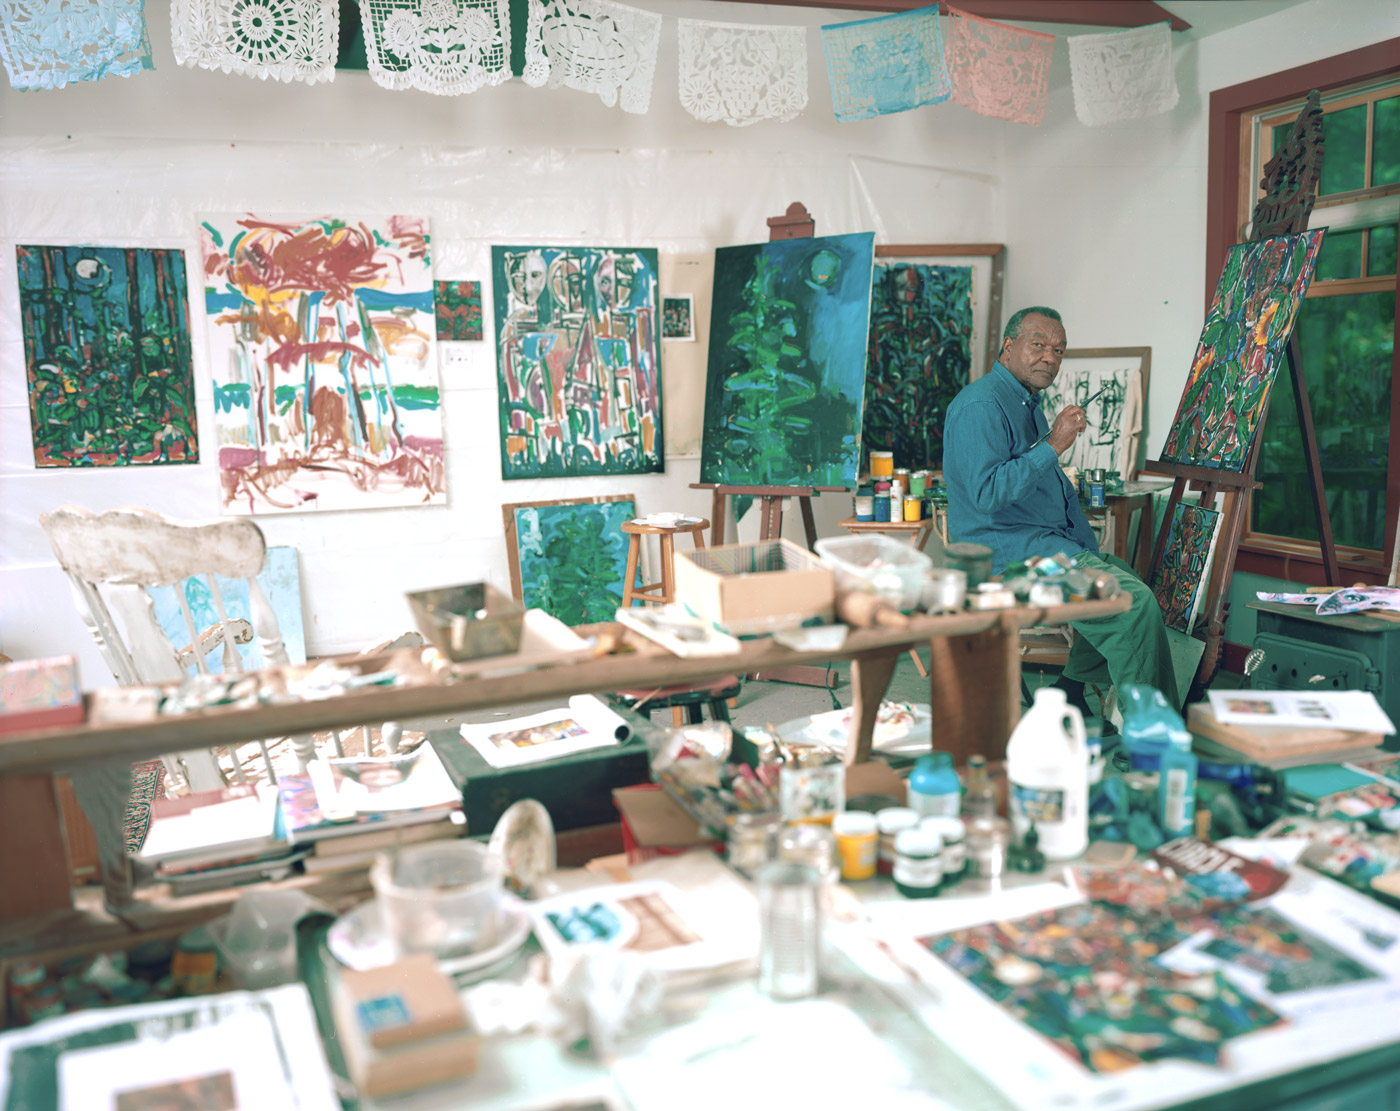 Photograph of David Driskell seated at his easel with a paint brush in hand in his studio surrounded by paintings.